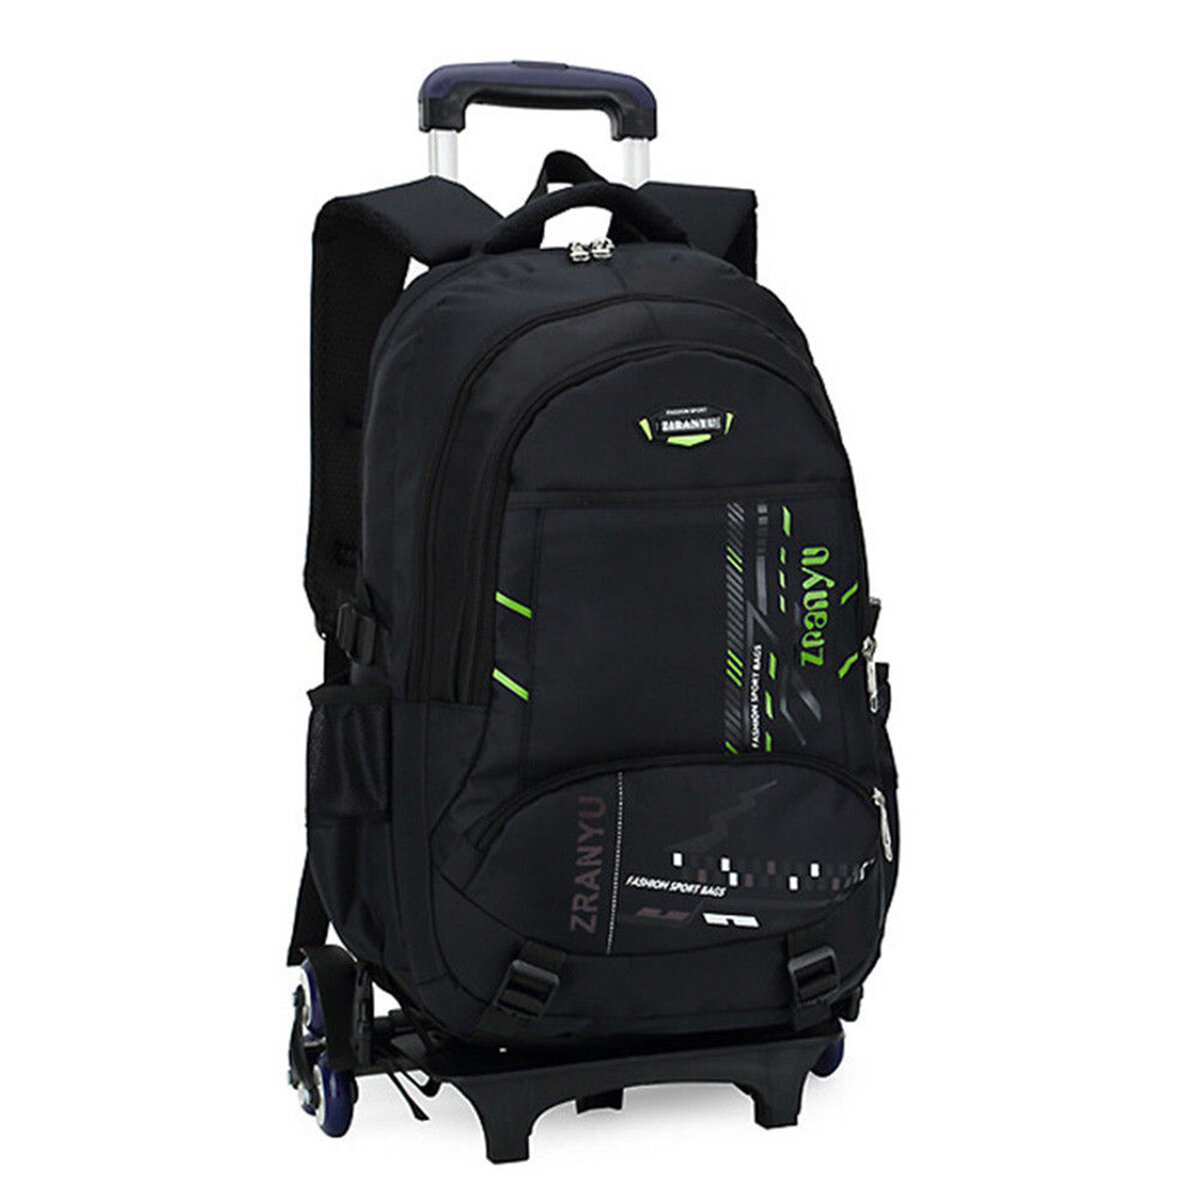 85c8cbce8037 36L Children Kids Trolley Backpack Camping Travel Rucksack School Luggage  Bag With Wheels COD